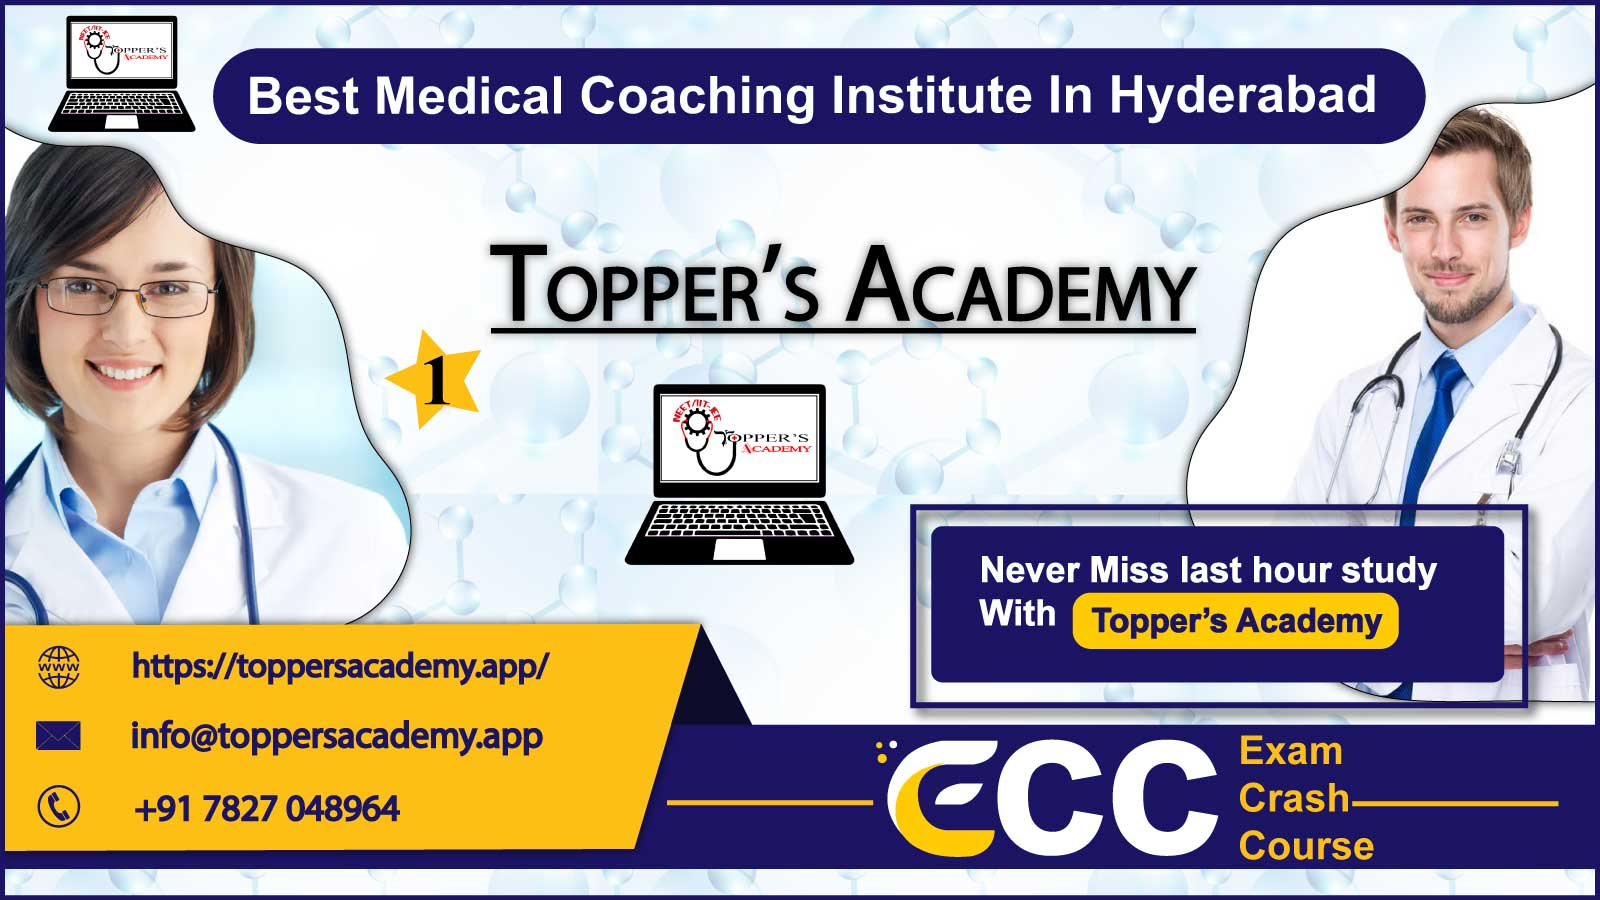 The Top Coaching Institute for NEET preparation in Hyderabad